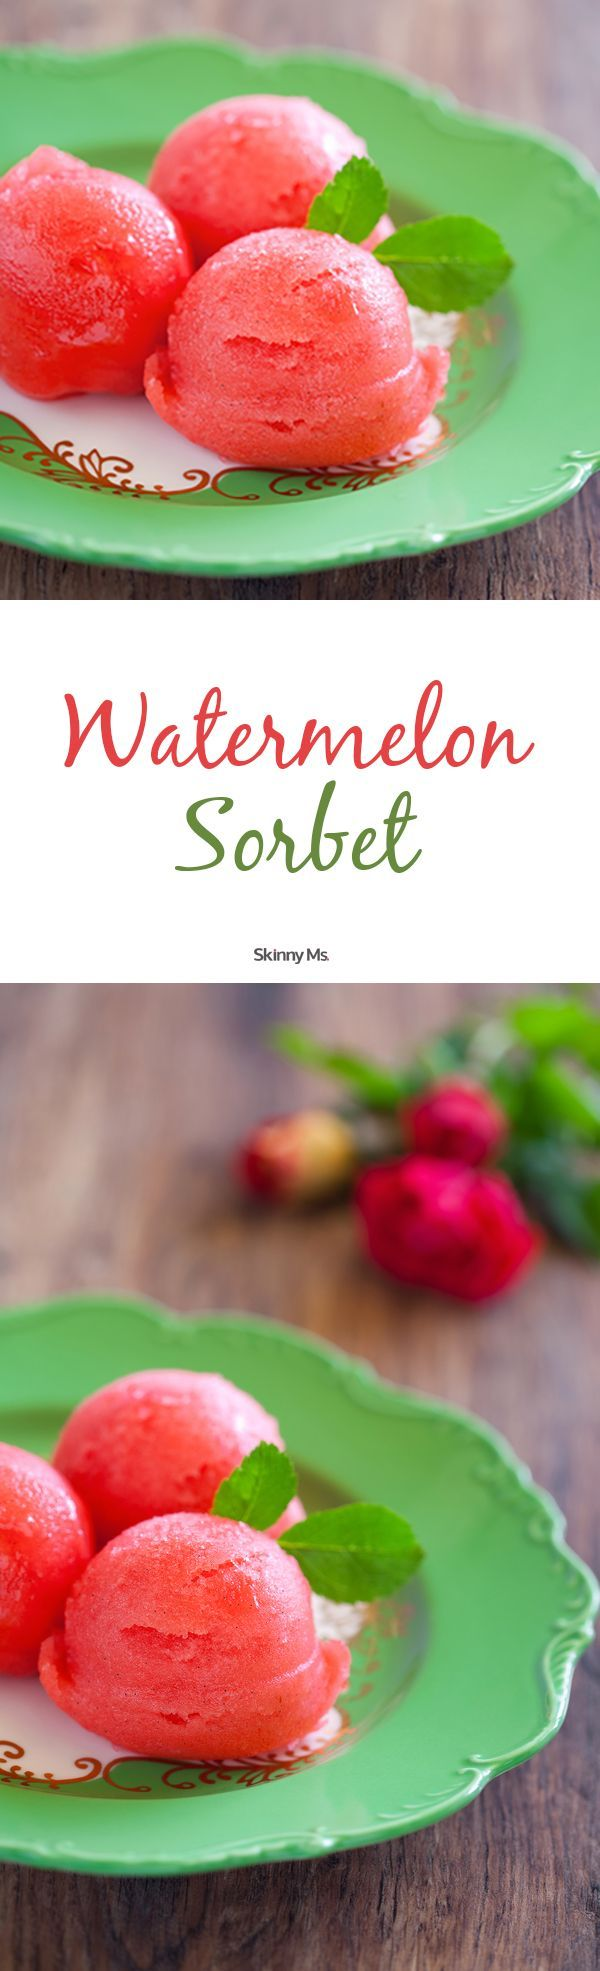 We don't skimp on tasty desserts. This 2-Ingredient Watermelon Sorbet is an easy and healthy no-bake way to tame your sweet tooth! #watermelonsorbet #watermelon #nobakedessert